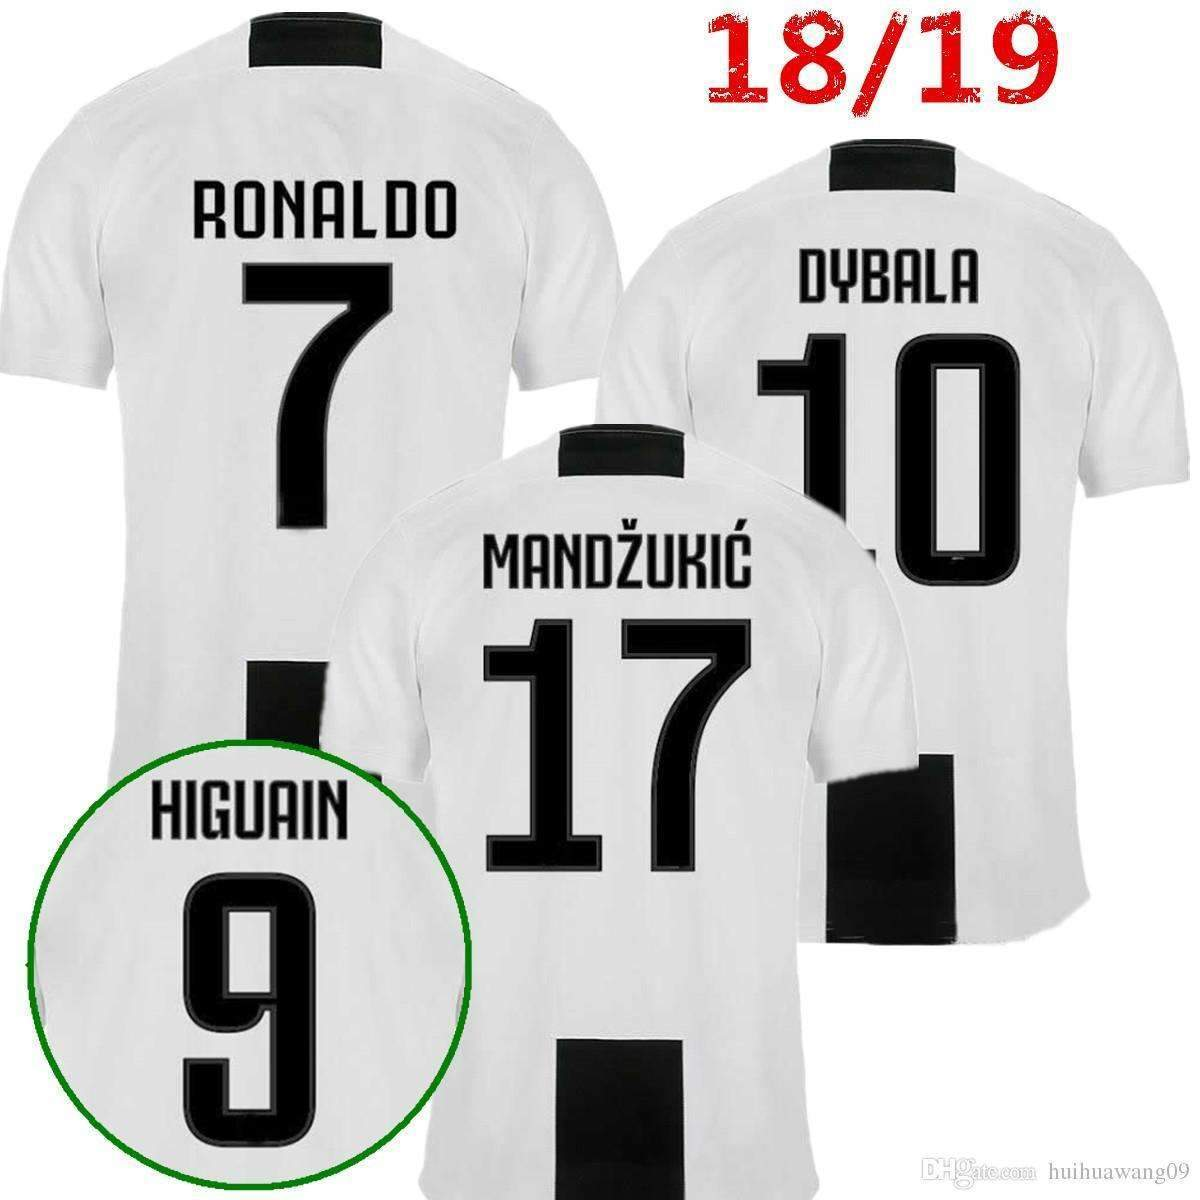 wholesale dealer 6fe54 1e290 Juventus Cristiano Ronaldo #7 NIKE Home SHIRT SOCCER FUSSBALL Replica  JERSEY FOOTBALL BNWT TOP